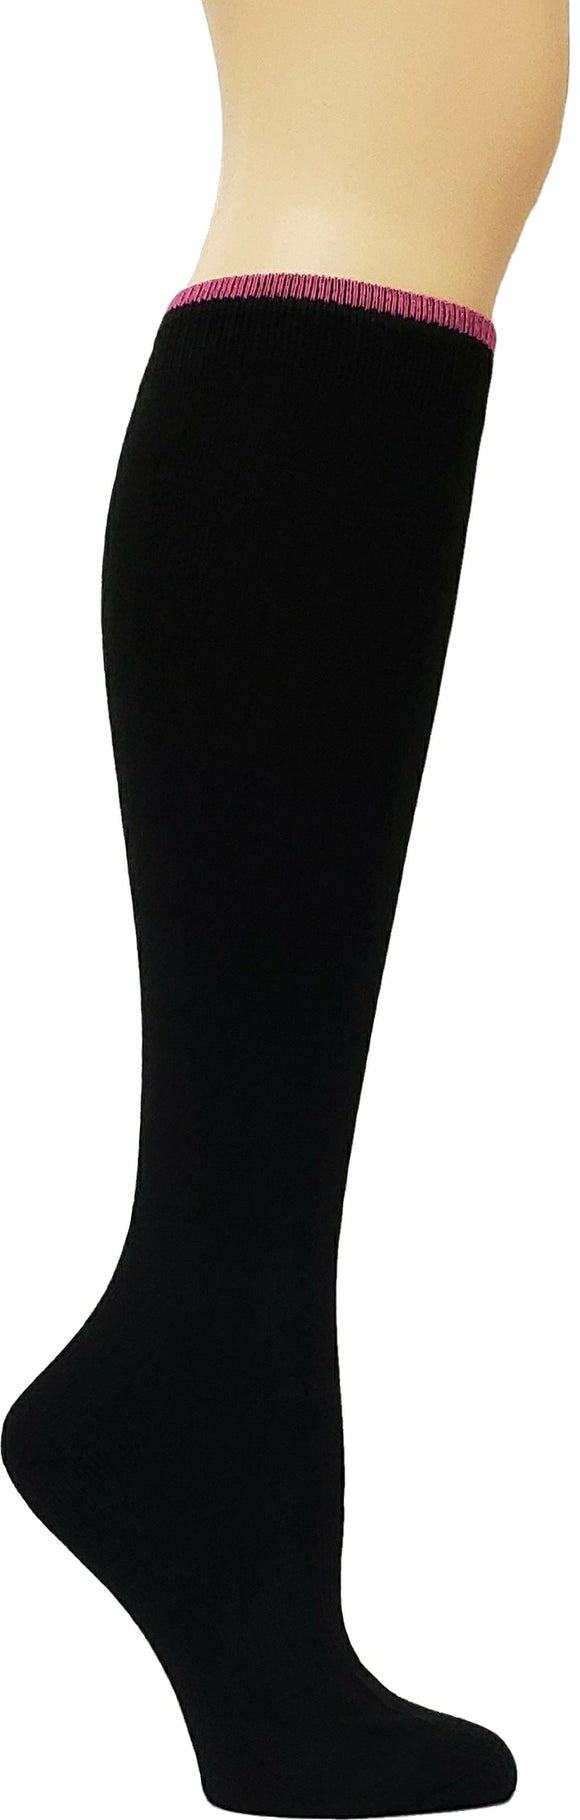 Women's Winter*Nit Knee High Wool Blend Socks